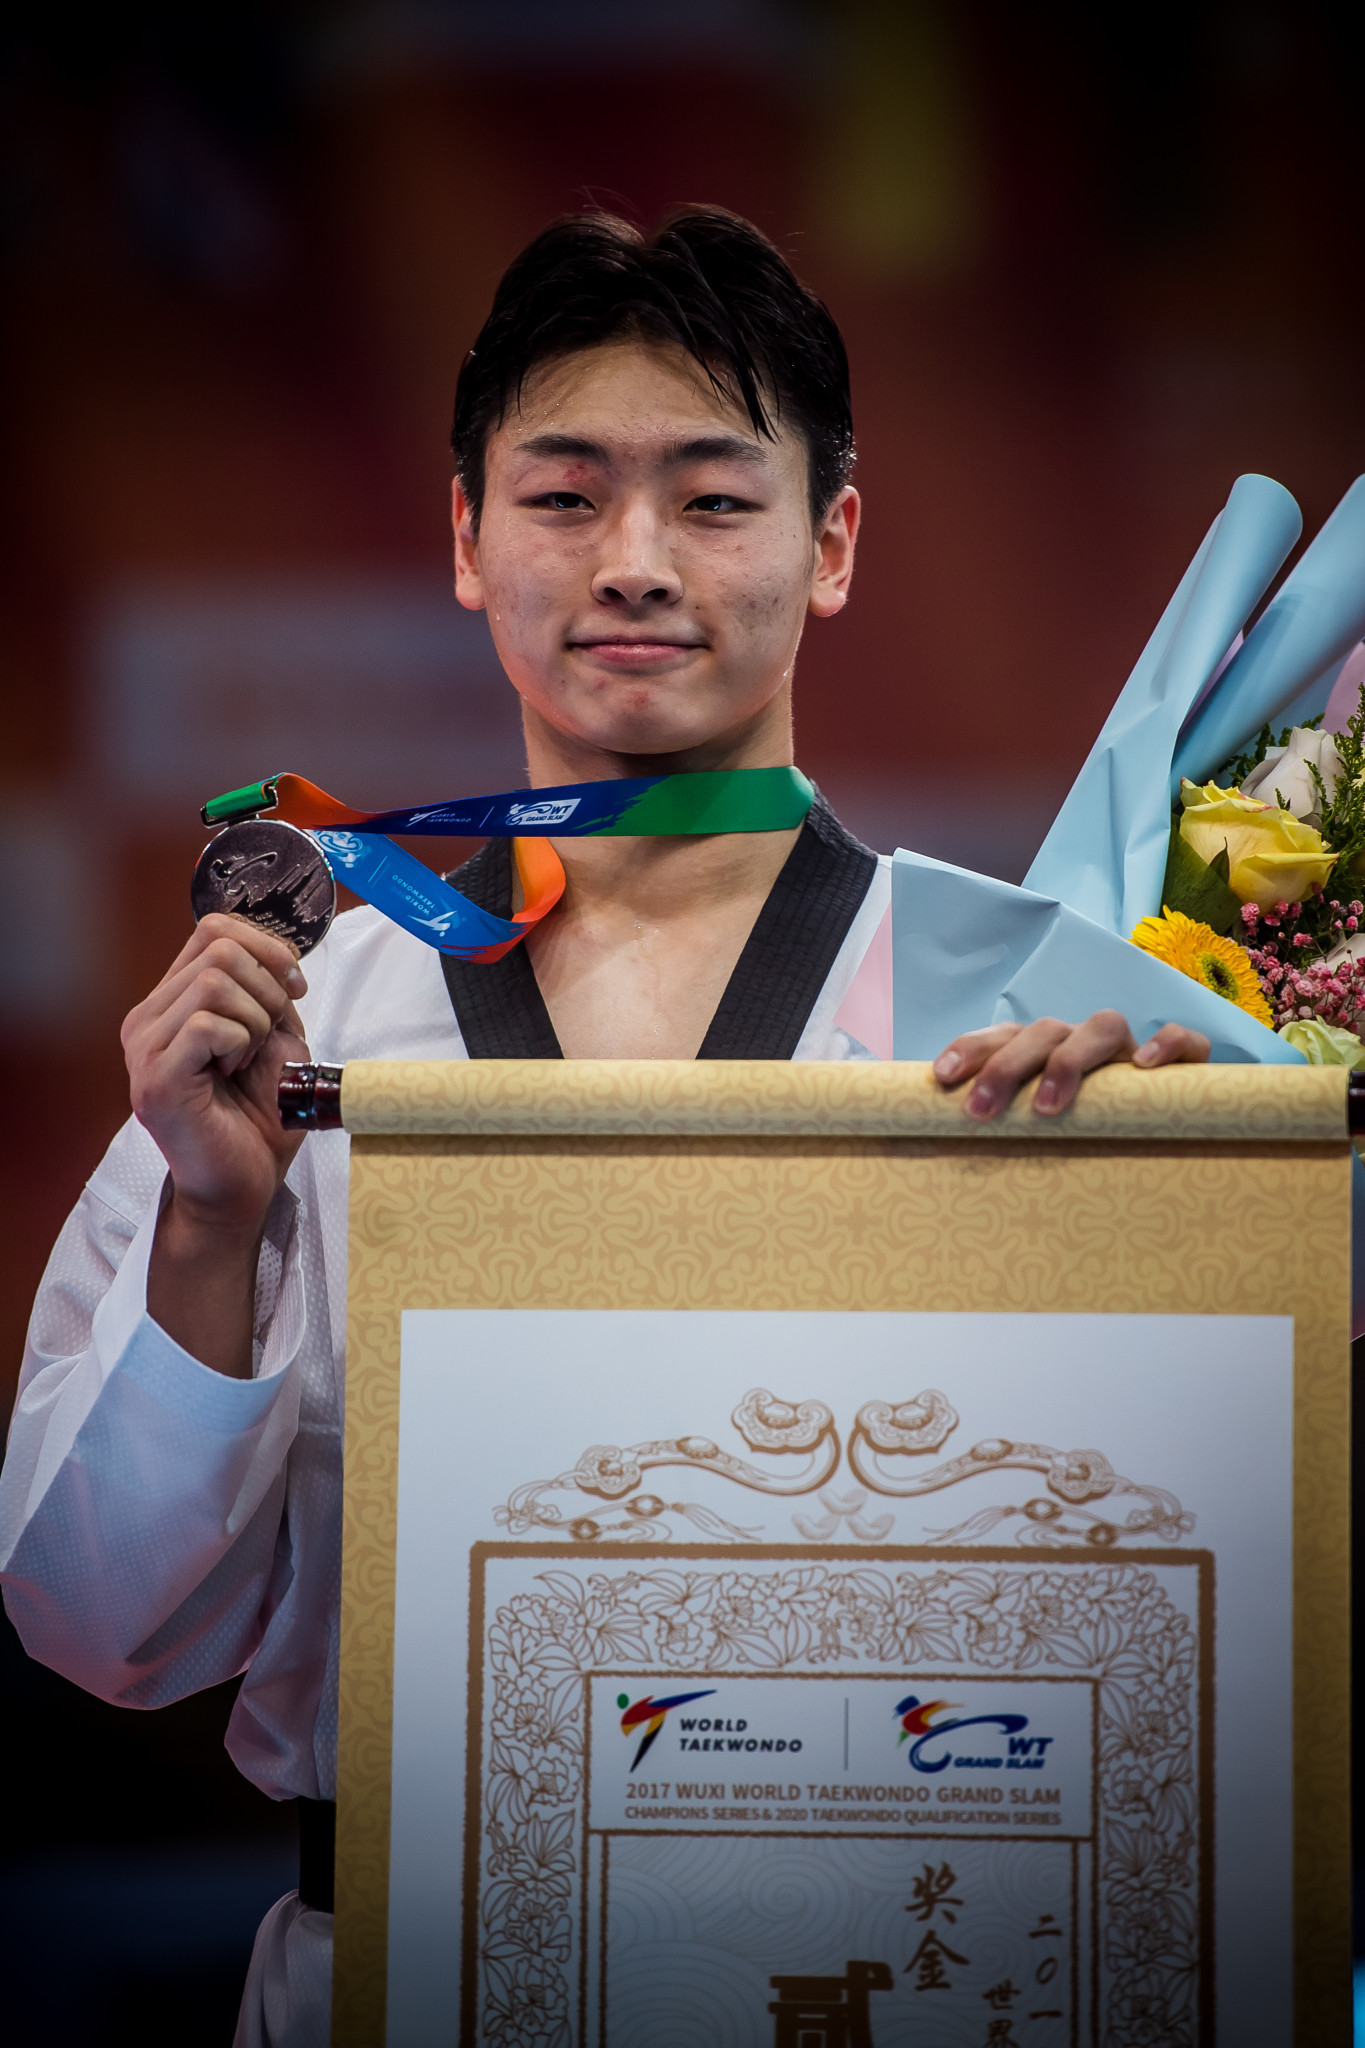 Nineteen-year-old Namgoong had to settle for the silver medal ©World Taekwondo